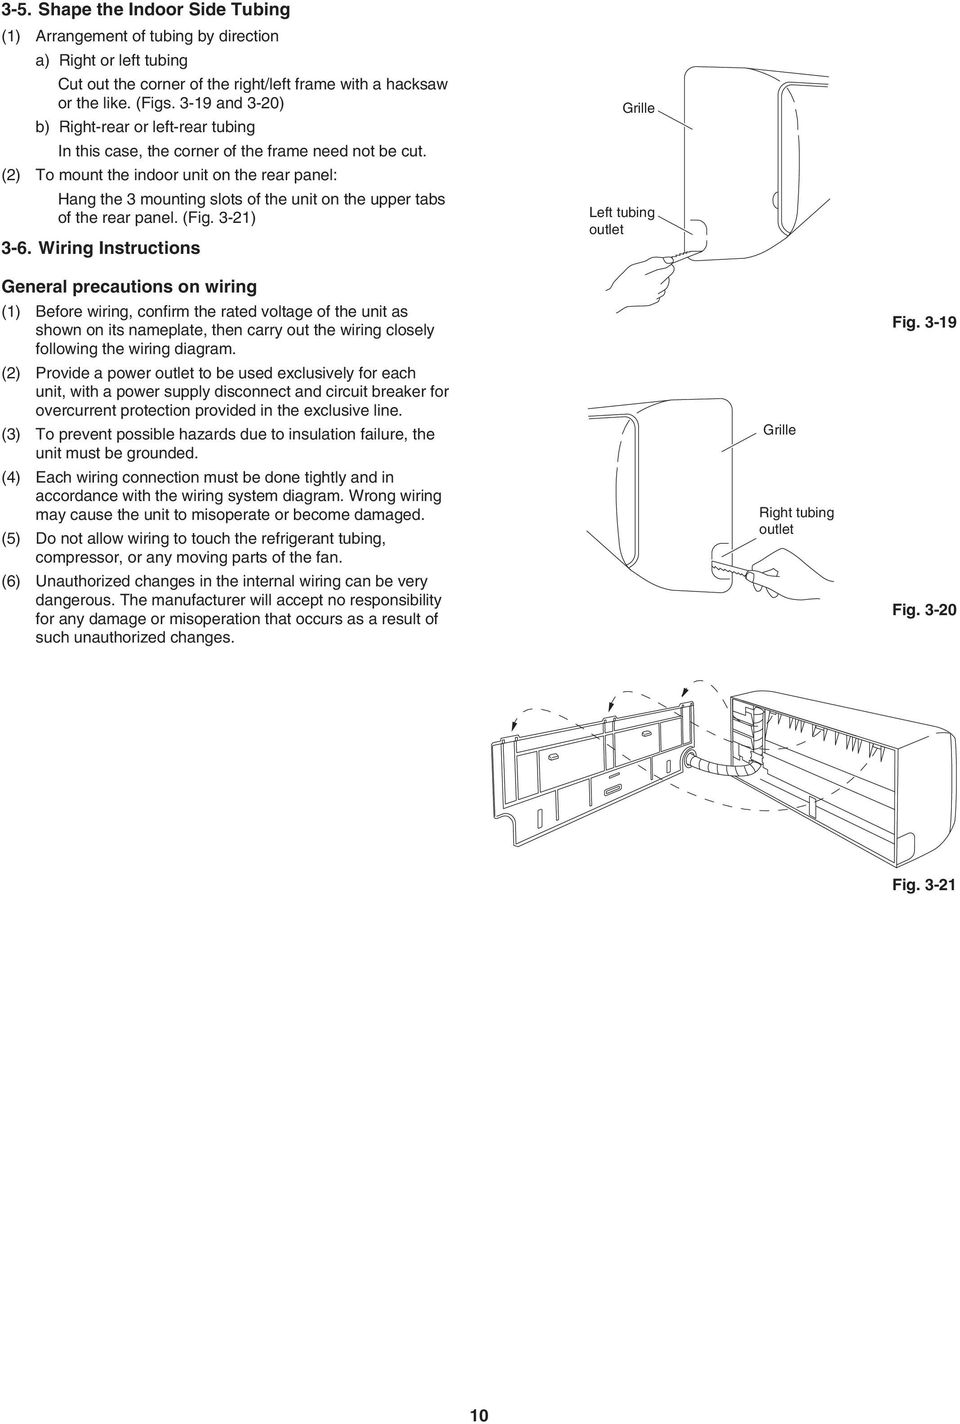 Installation Instructions Pdf 6 Wire Outlet Diagram Panel Fig 3 21 Wiring Grille Left Tubing